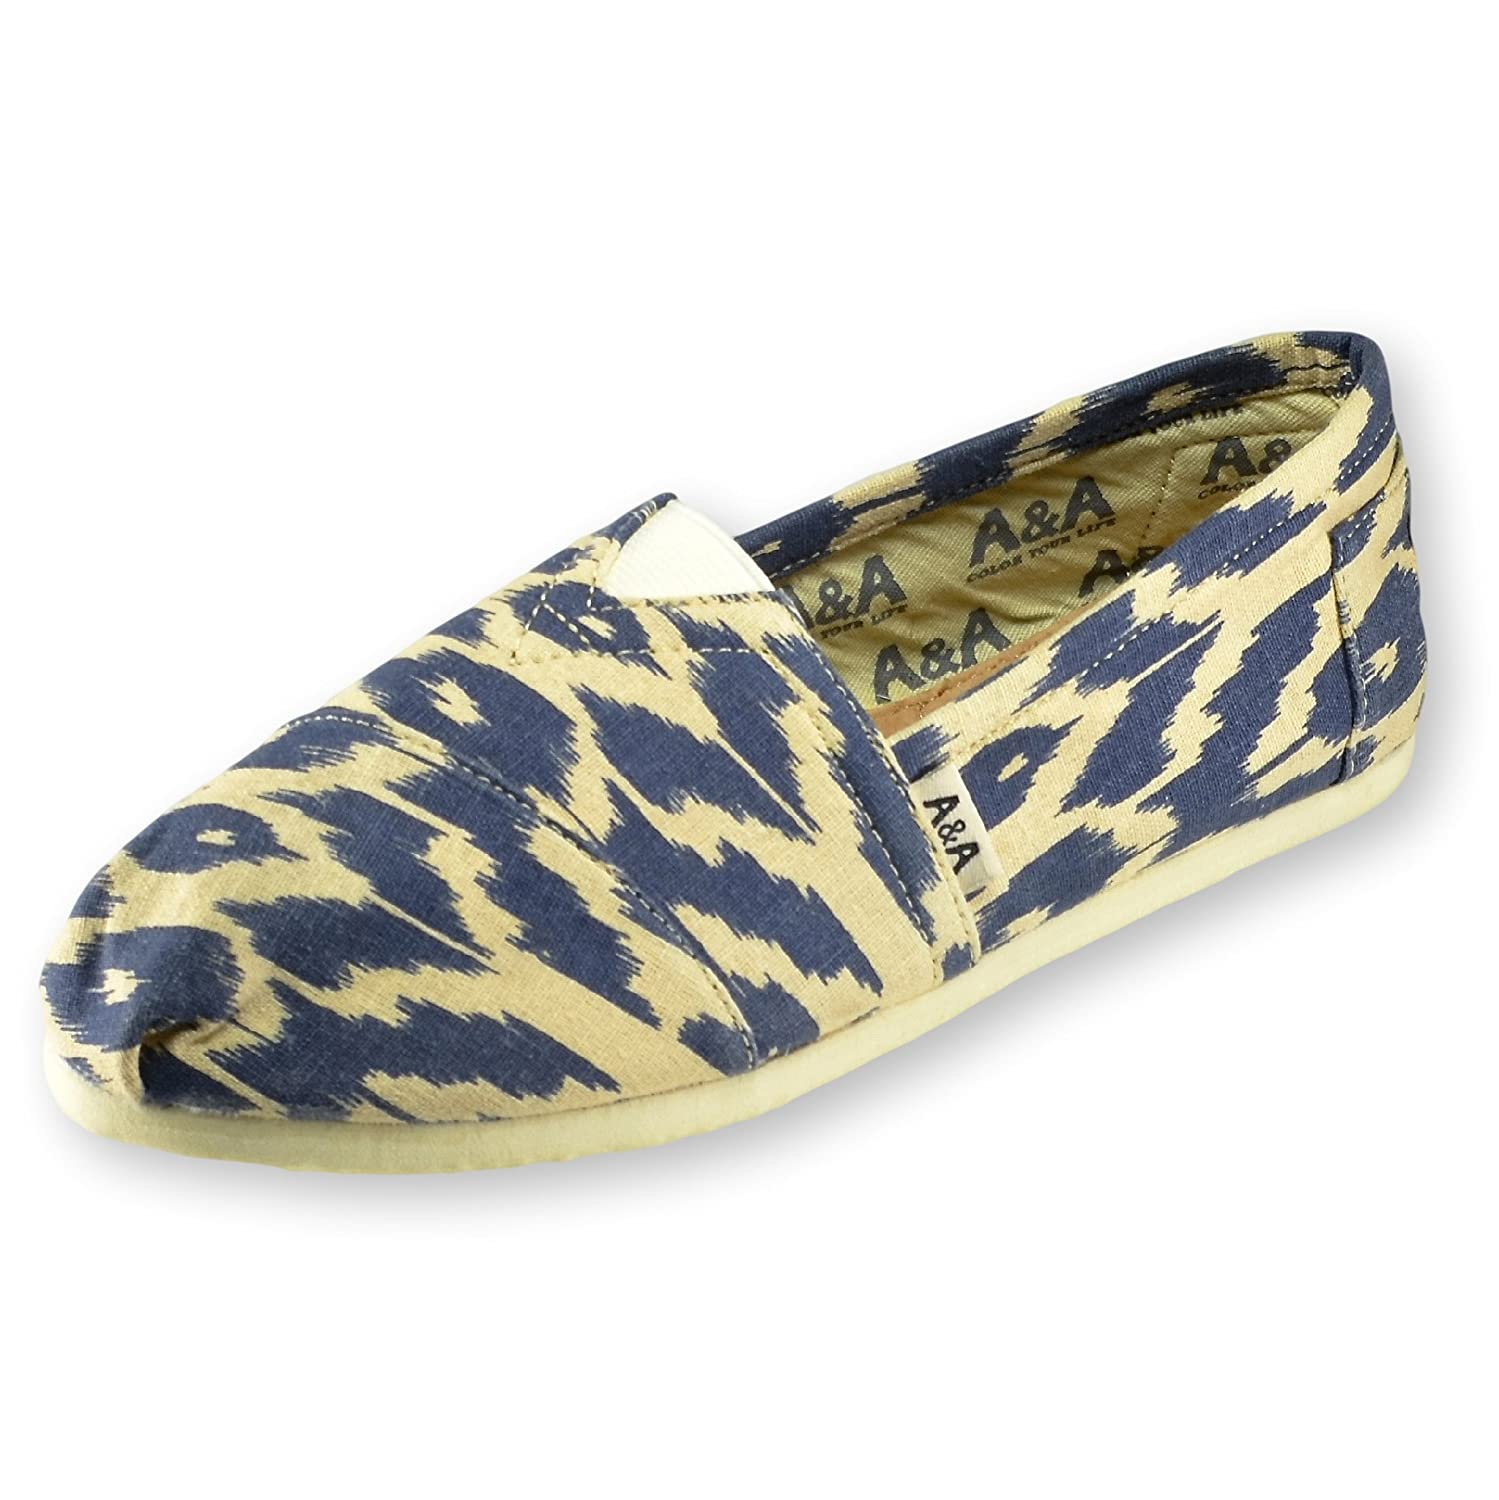 A&A Women Blue Slip-on Casual Flats Canvas Shoes Alpargatas (Ikat)